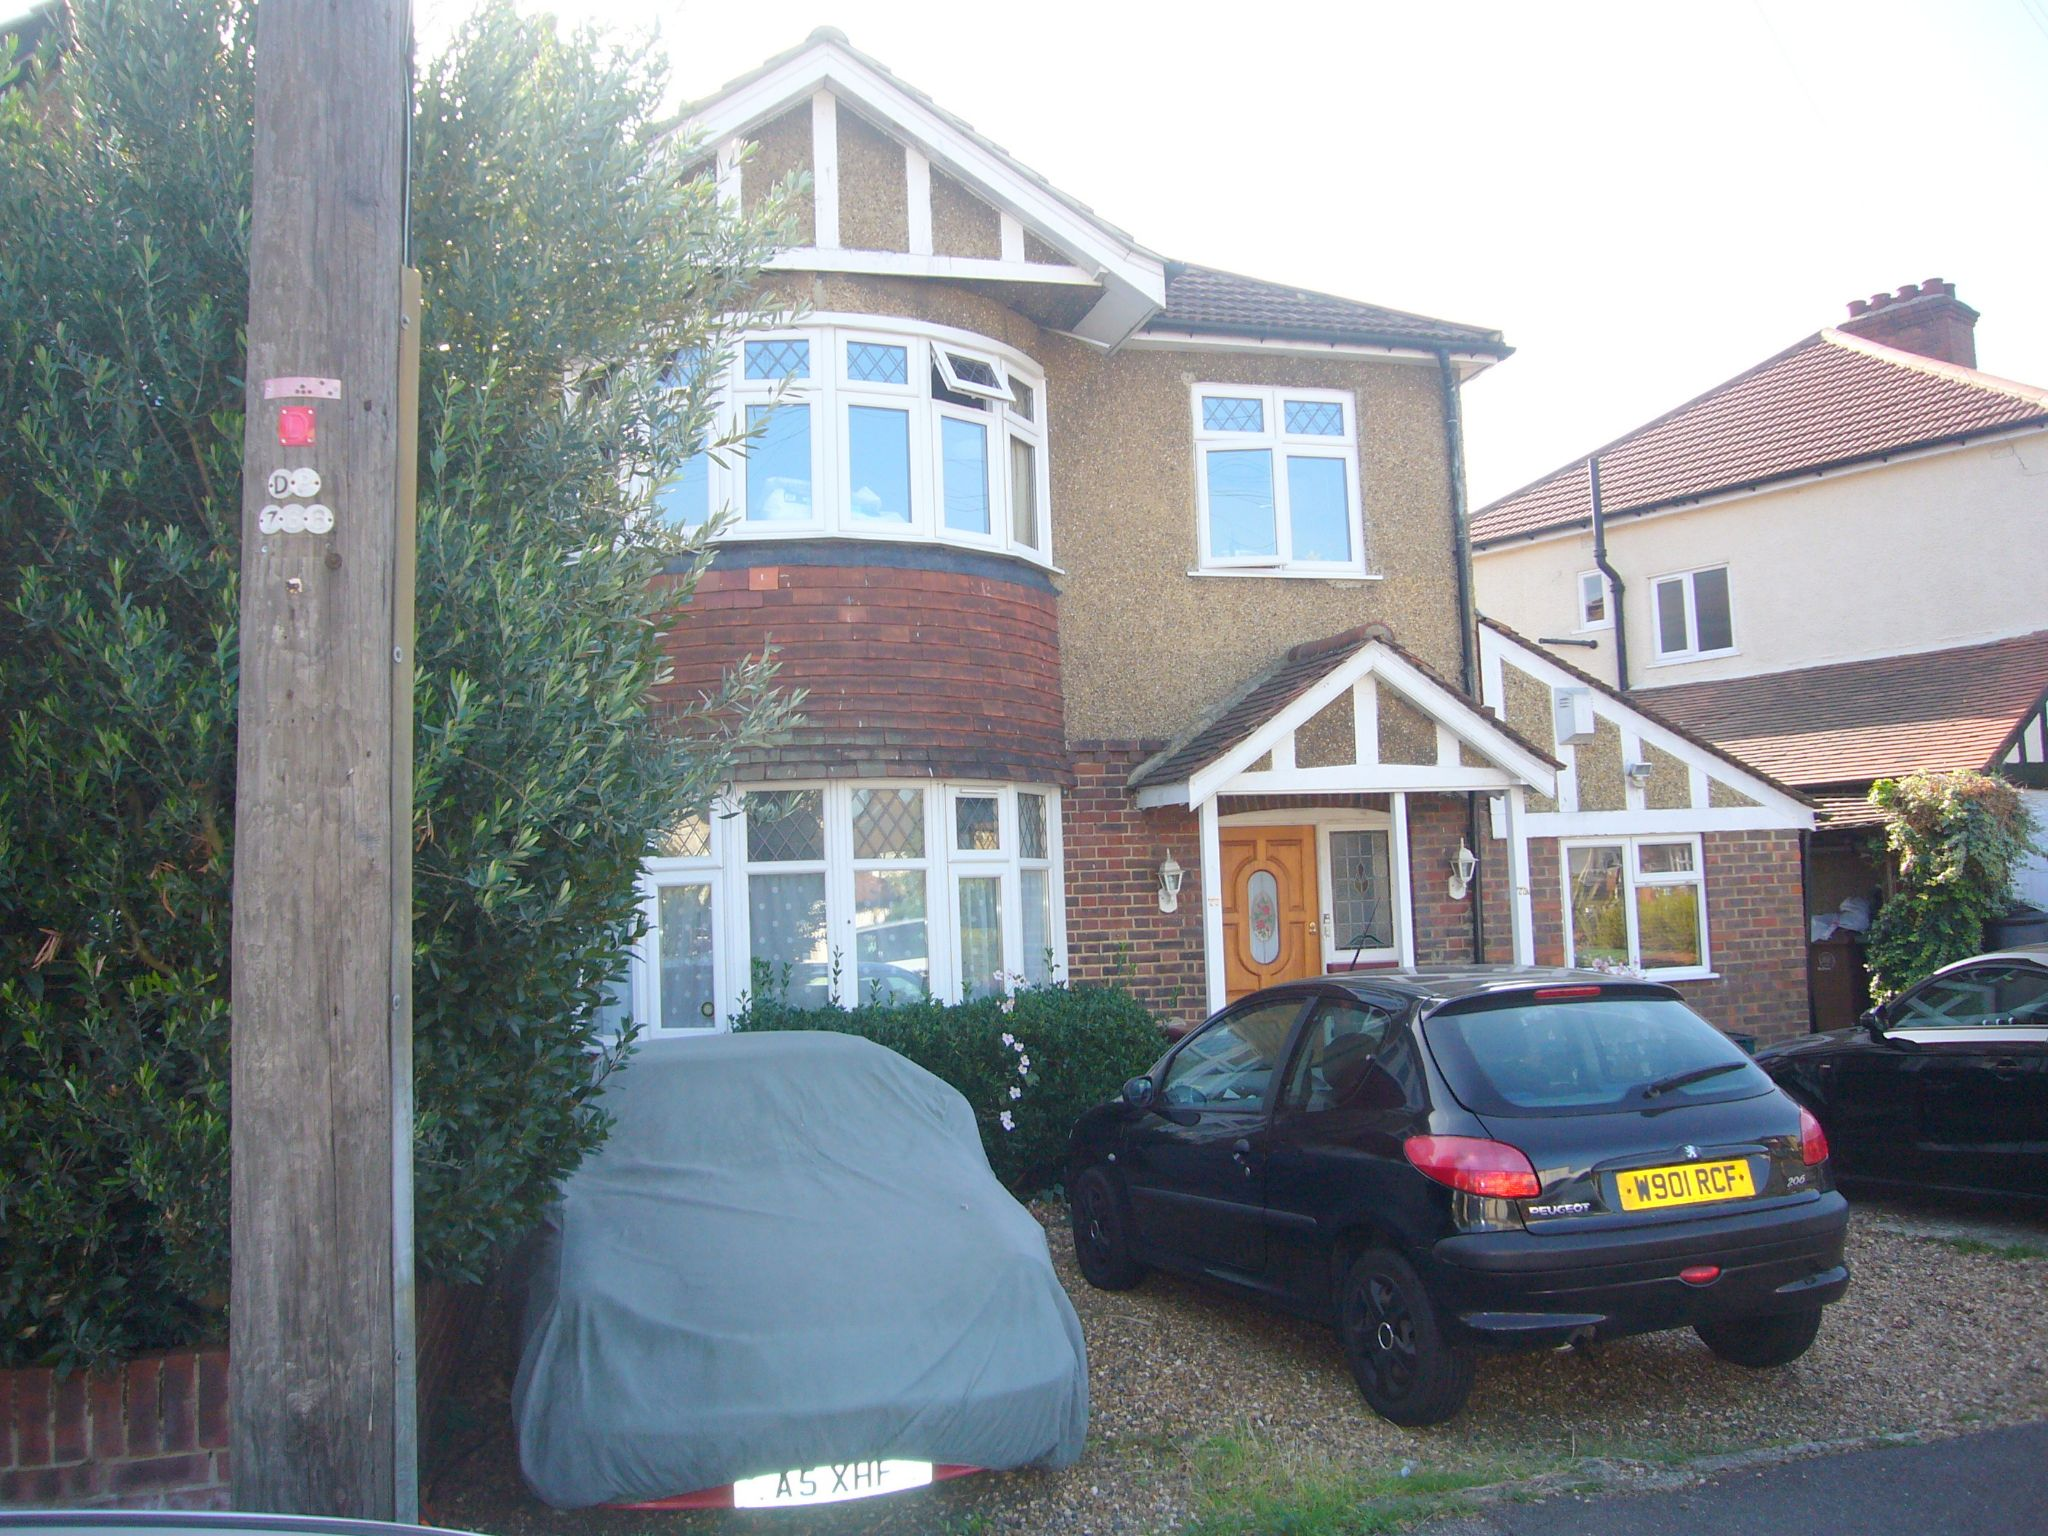 1 bedroom maisonette flat/apartment Let Agreed in Sutton - Photograph 1.